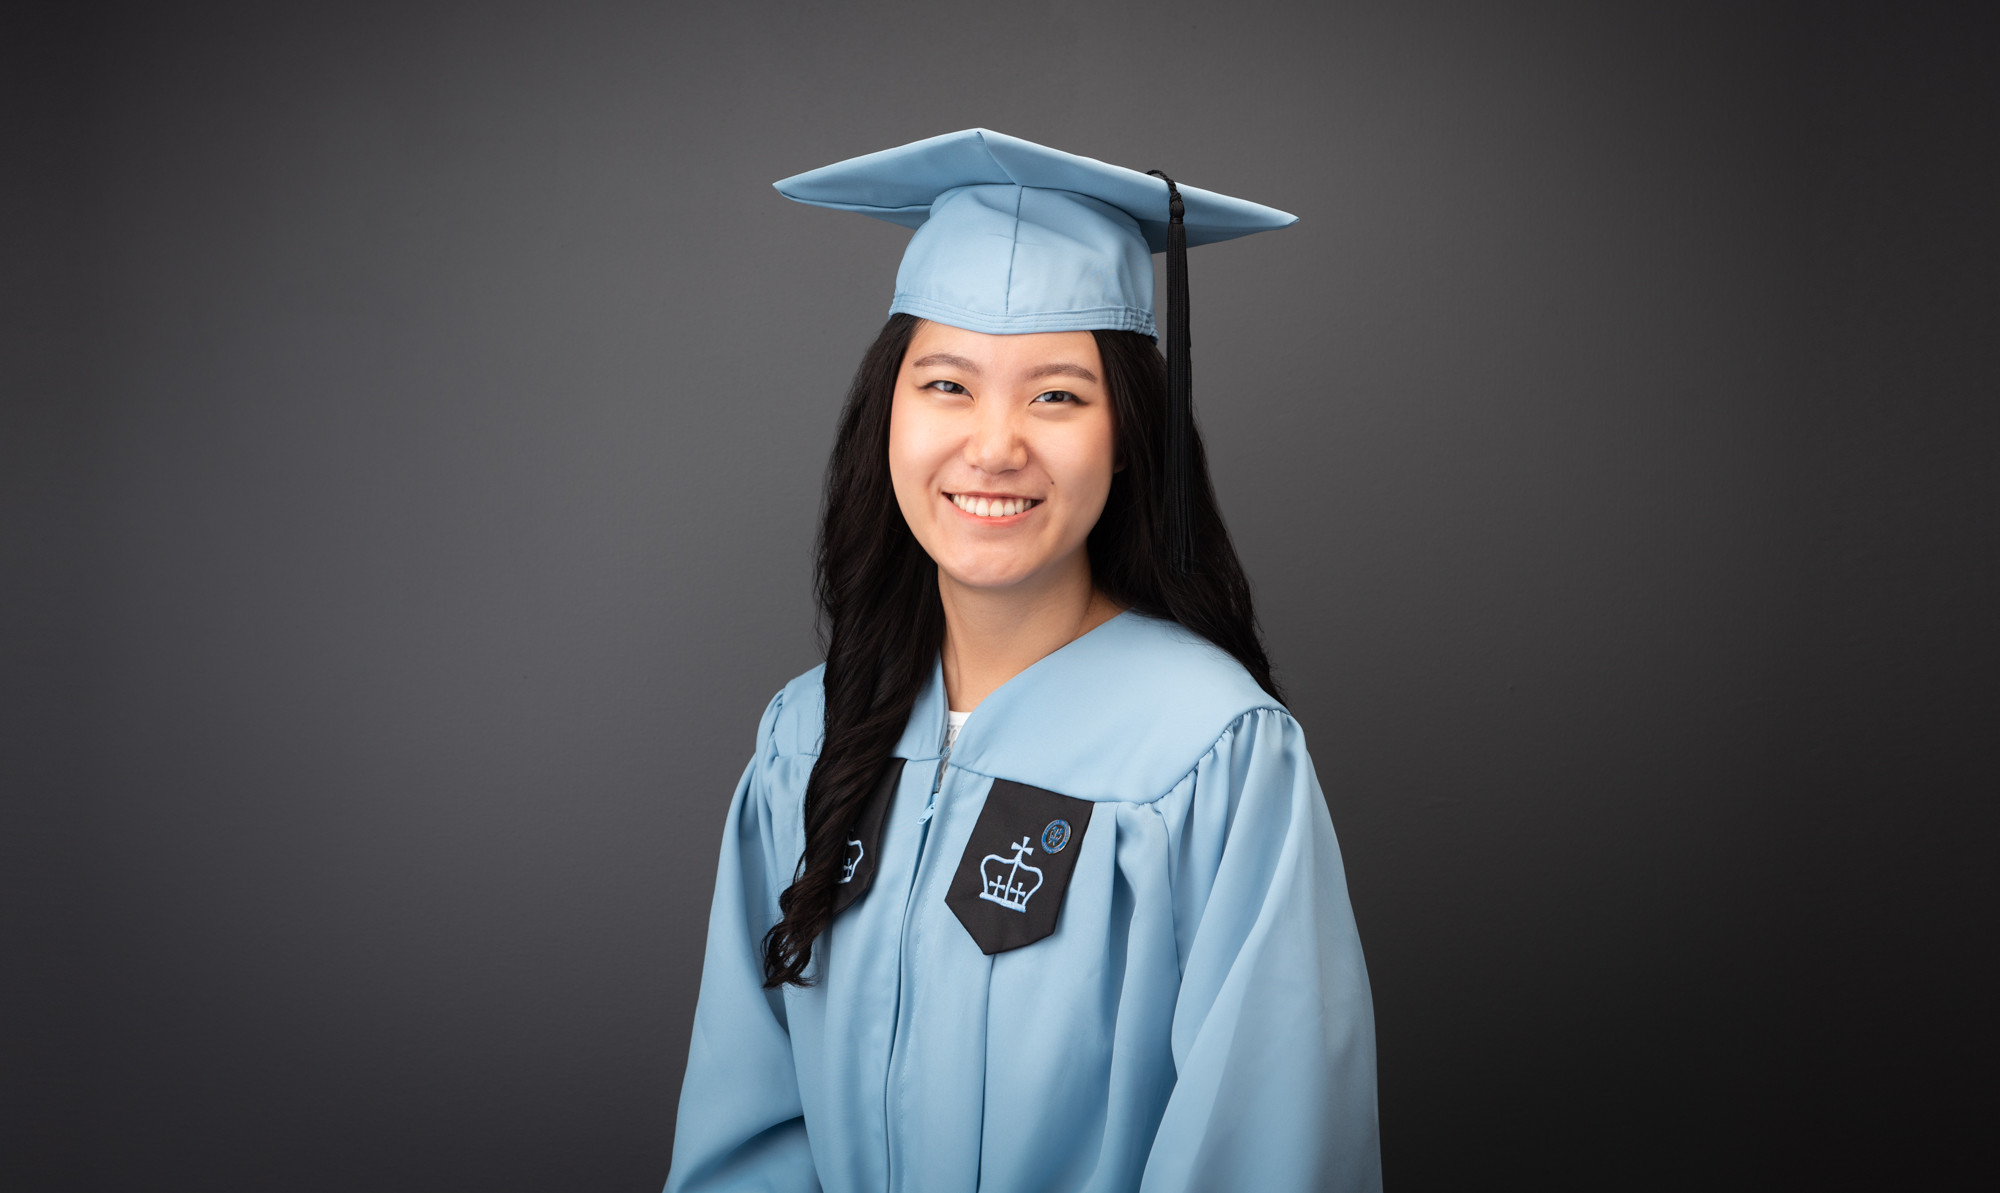 With Graduation Gown